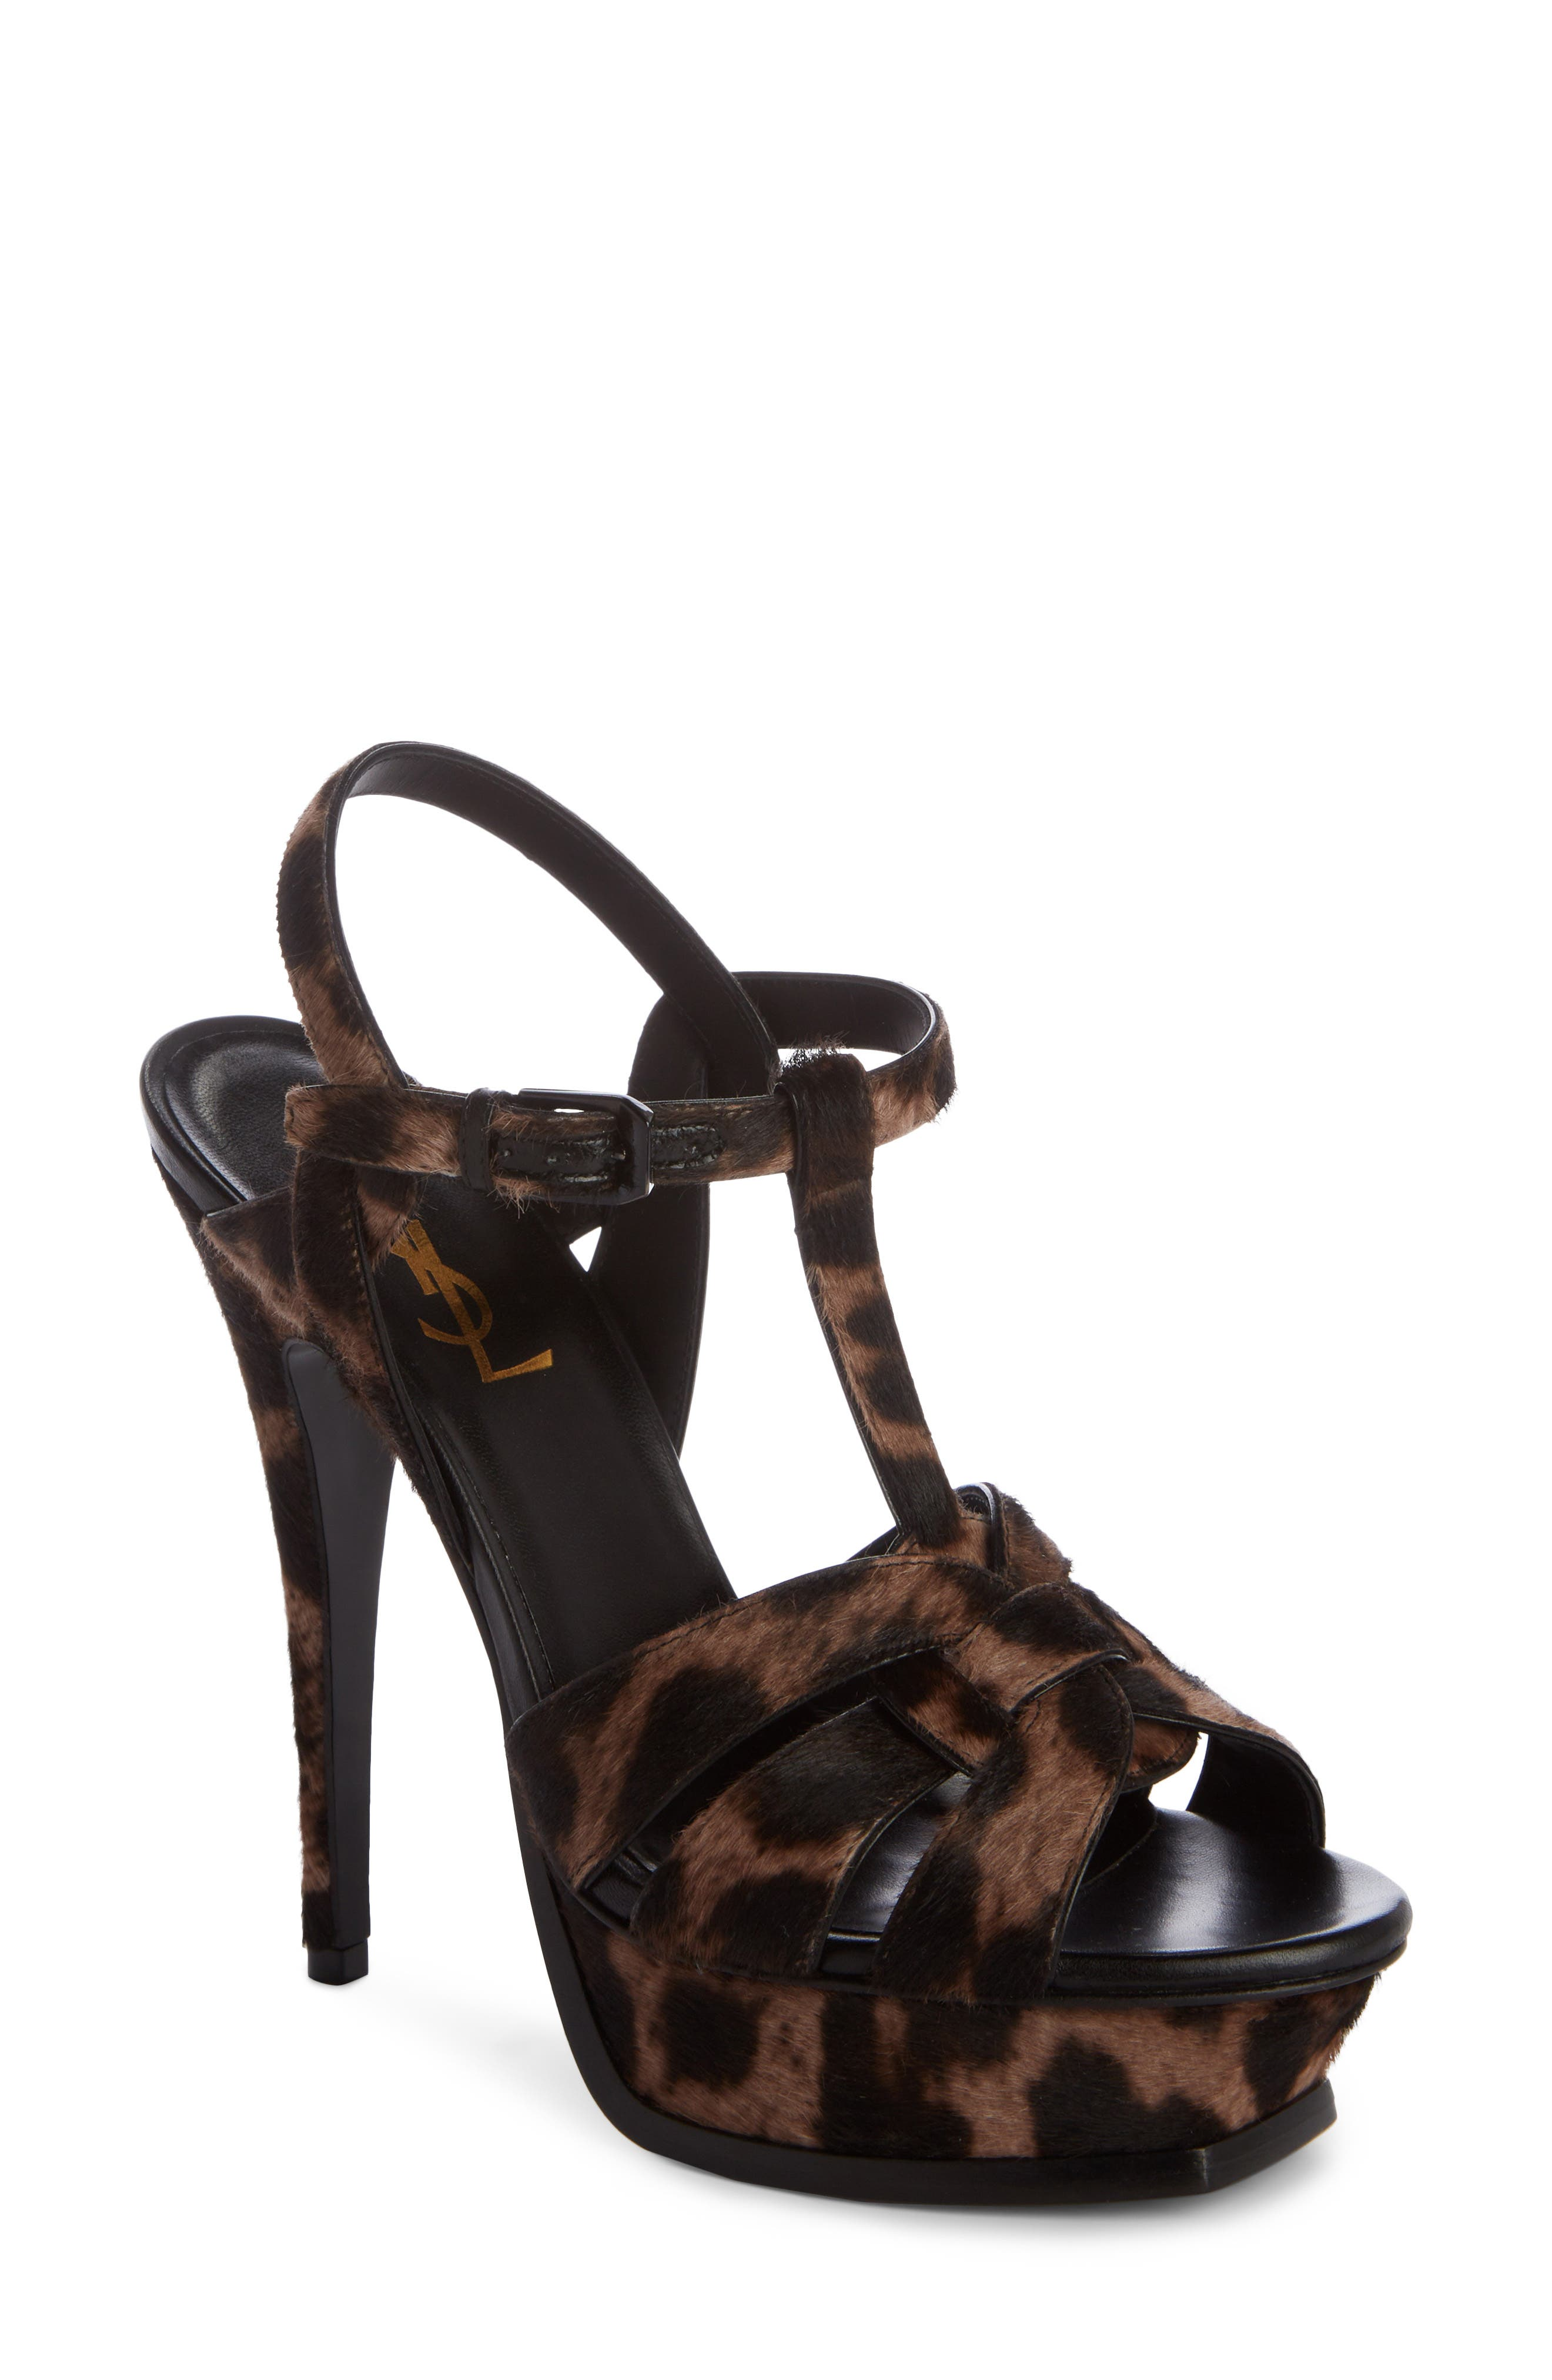 Tribute Leopard-Print Calf Hair Sandals - Brown Size 8.5